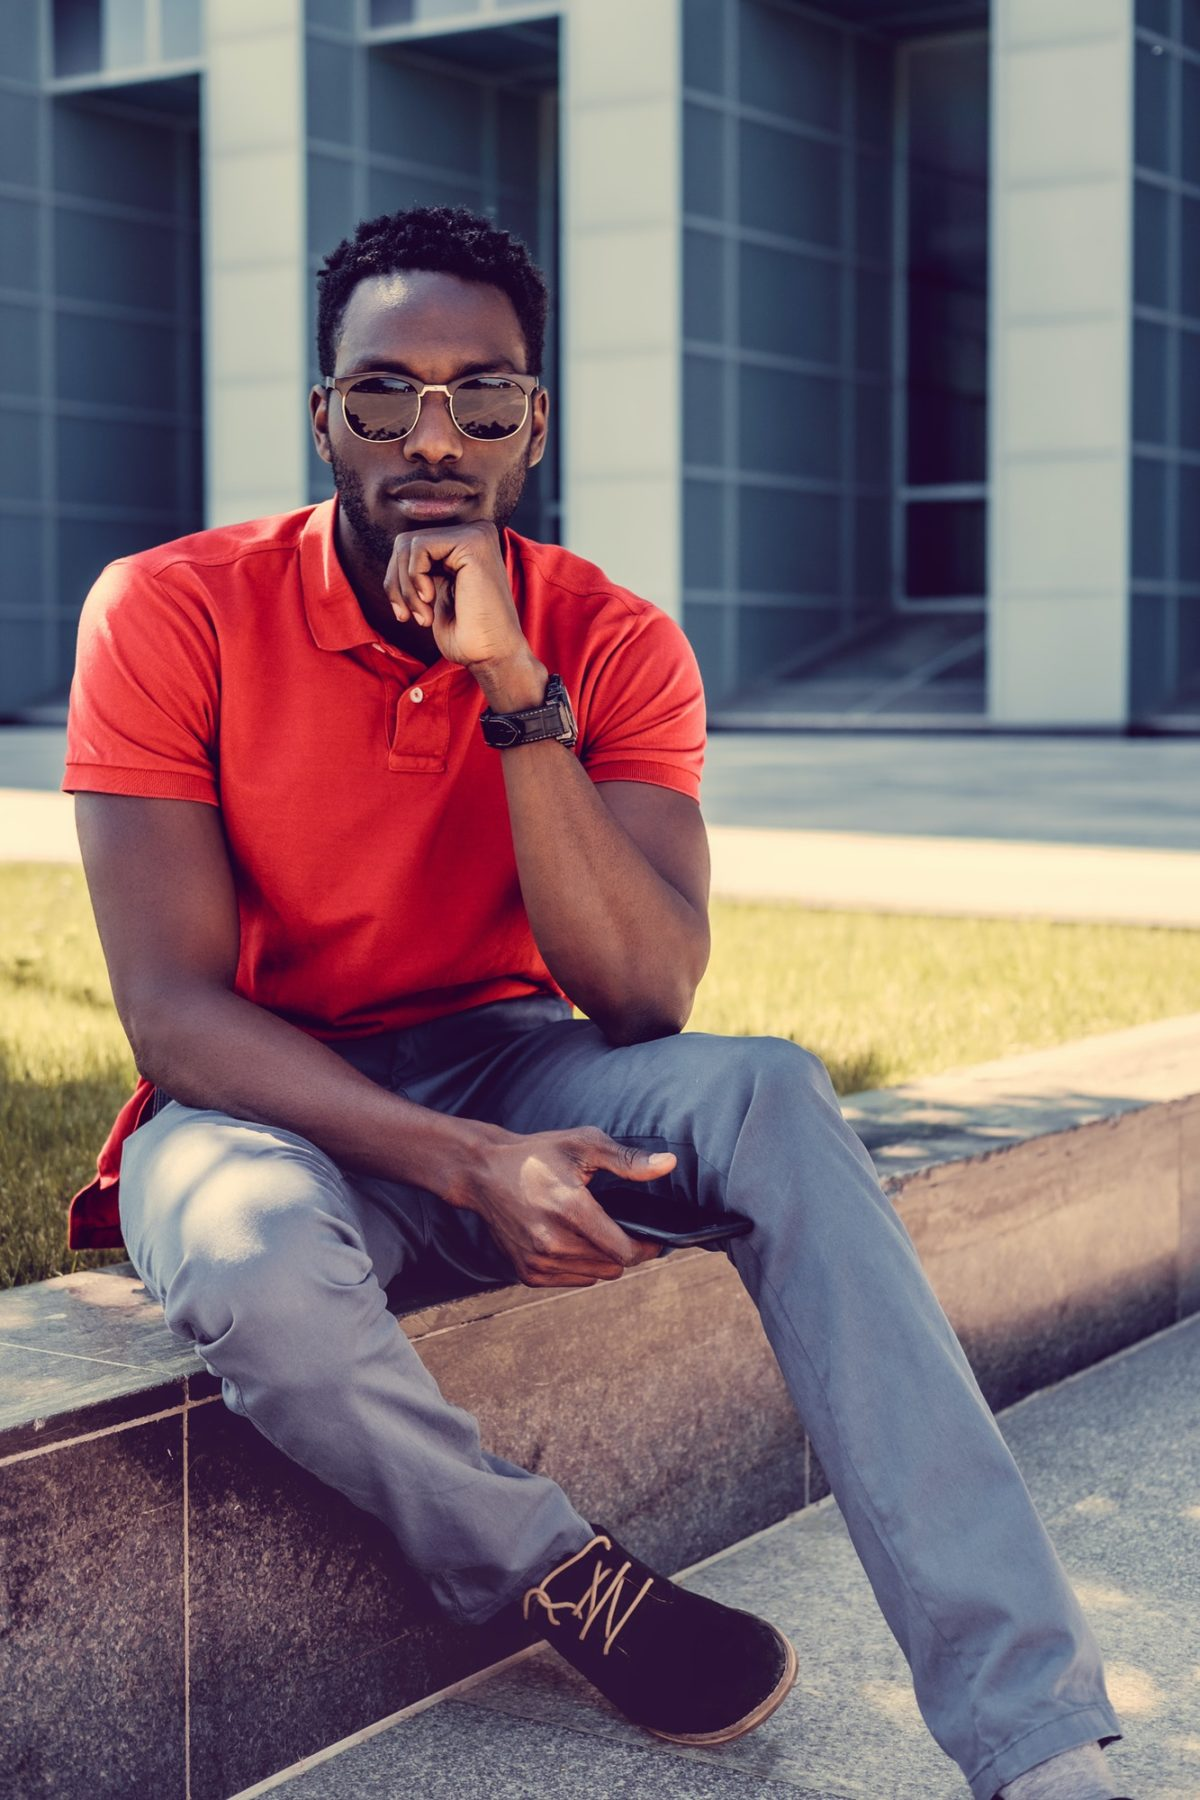 Portrait of serious black man in a red t shirt.